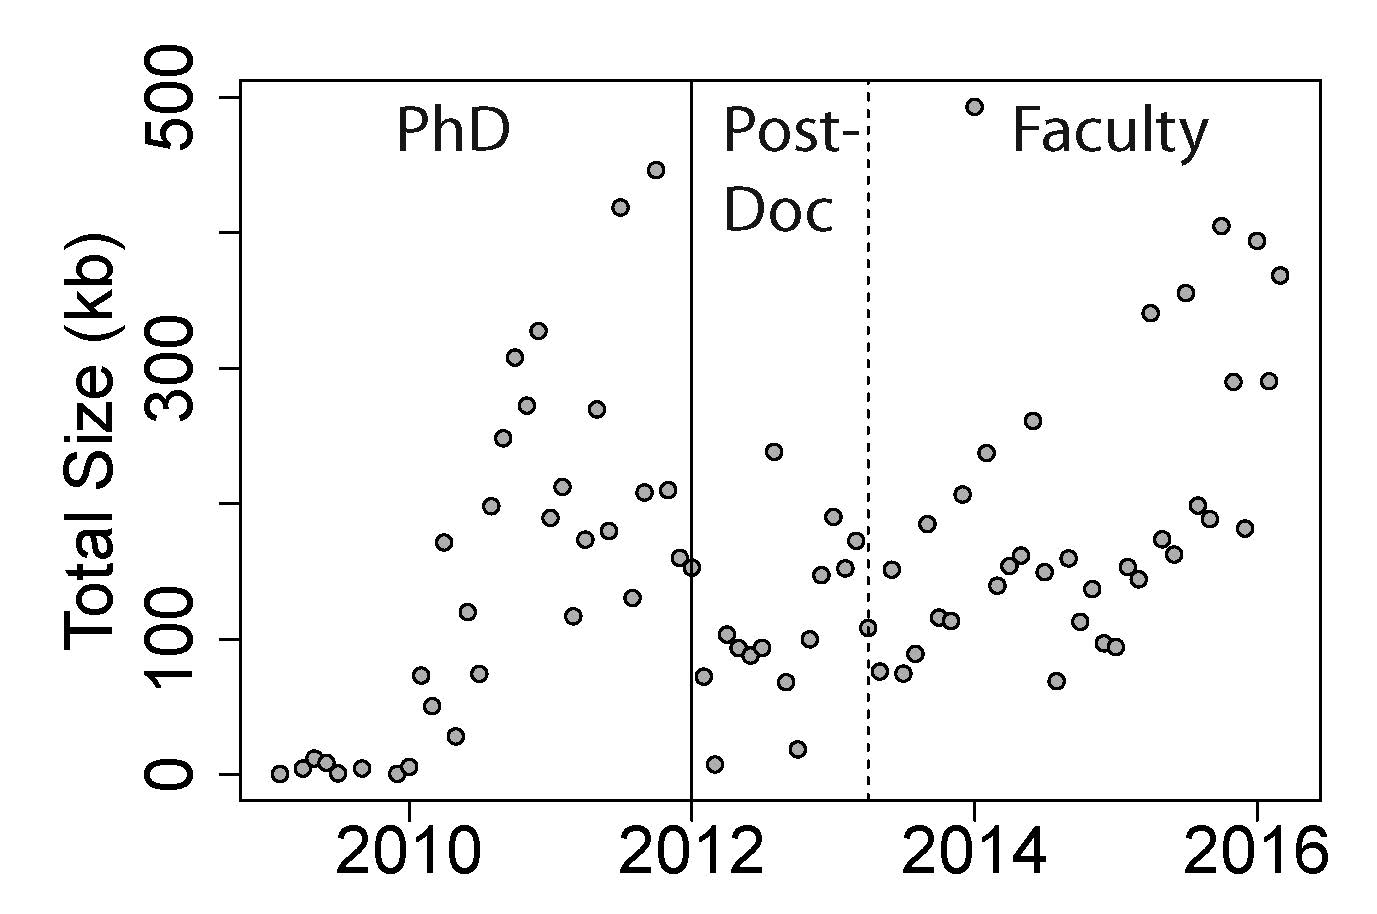 Figure 1: Coding output over time. Vertical bars separate my PhD, postdoc, and faculty jobs